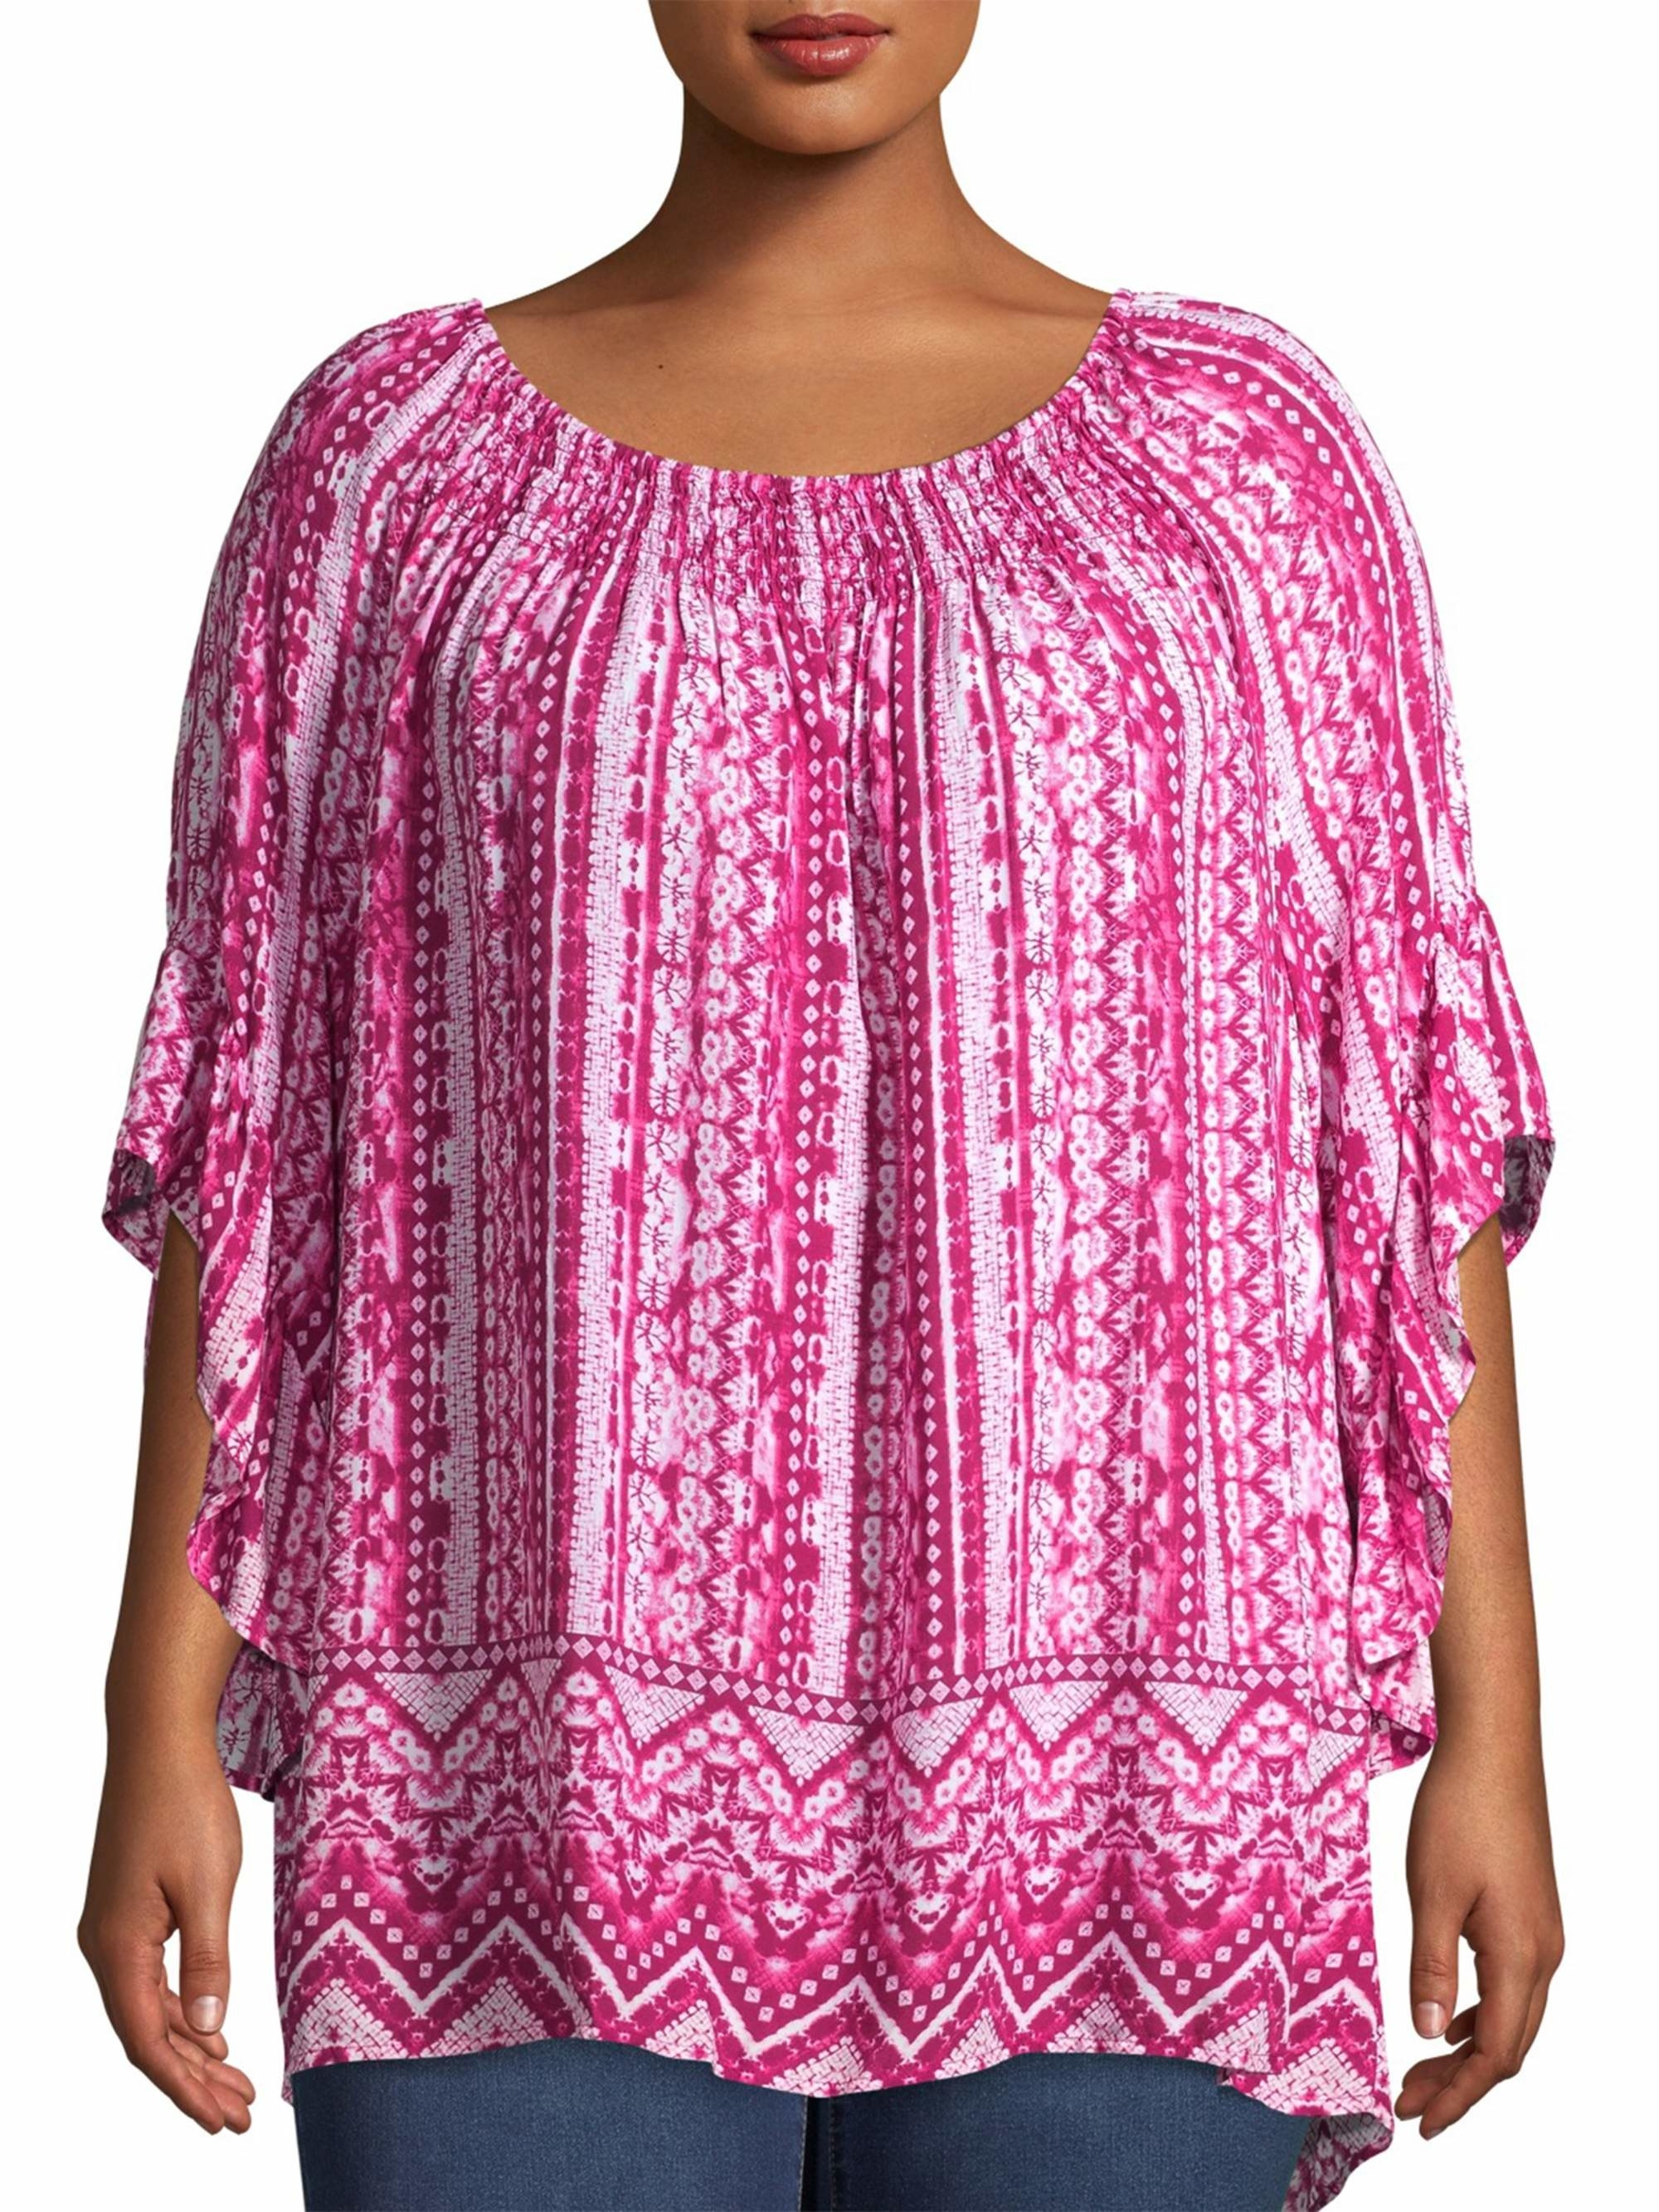 The pink patterned short sleeve top